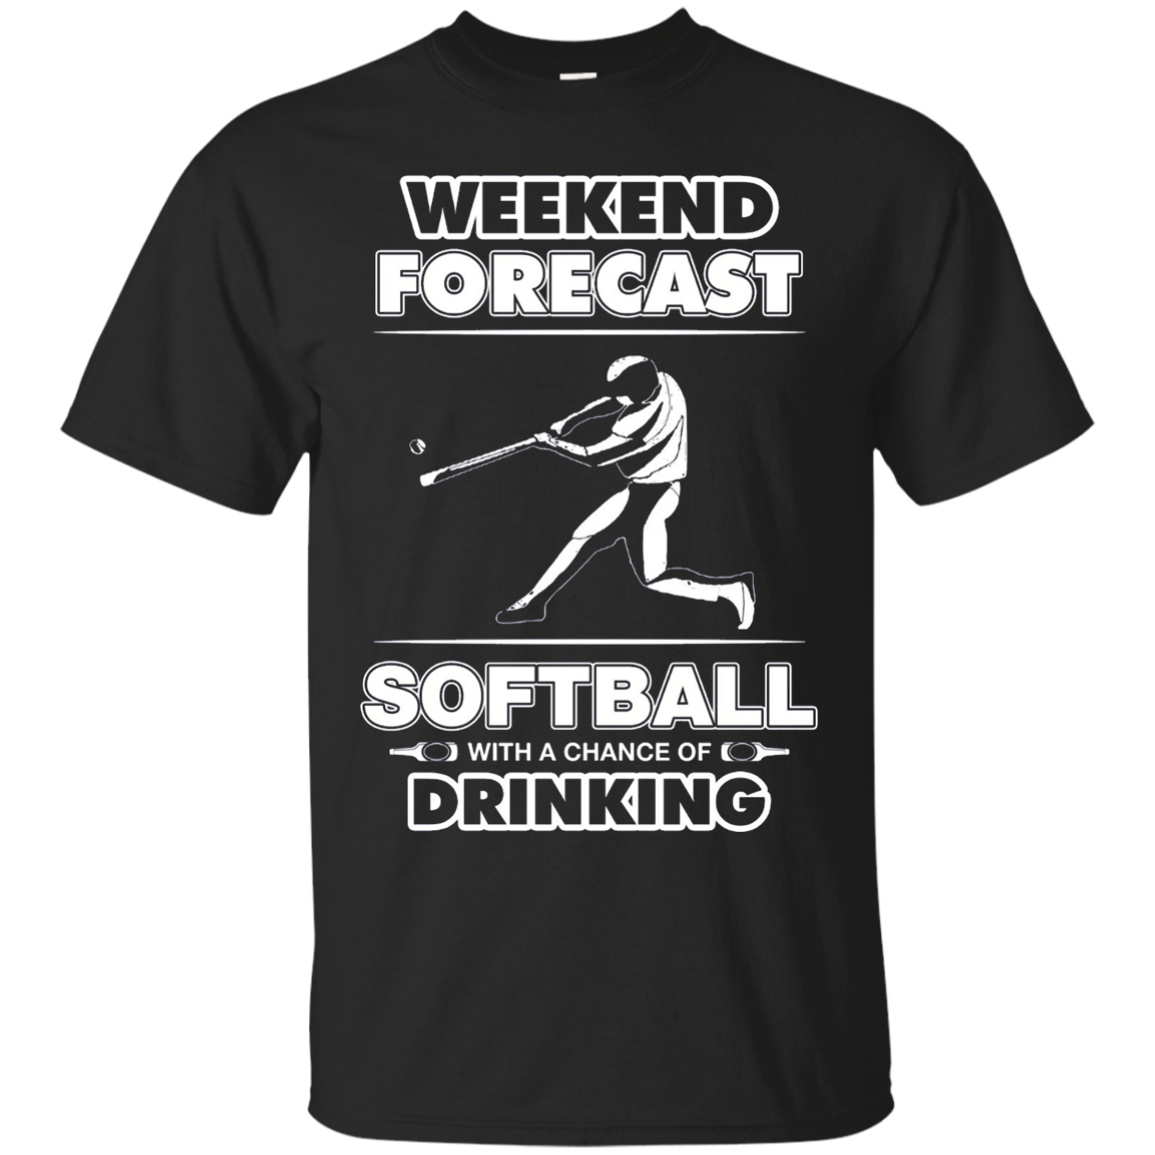 Softball team shirts - Weekend Forecast - Softball